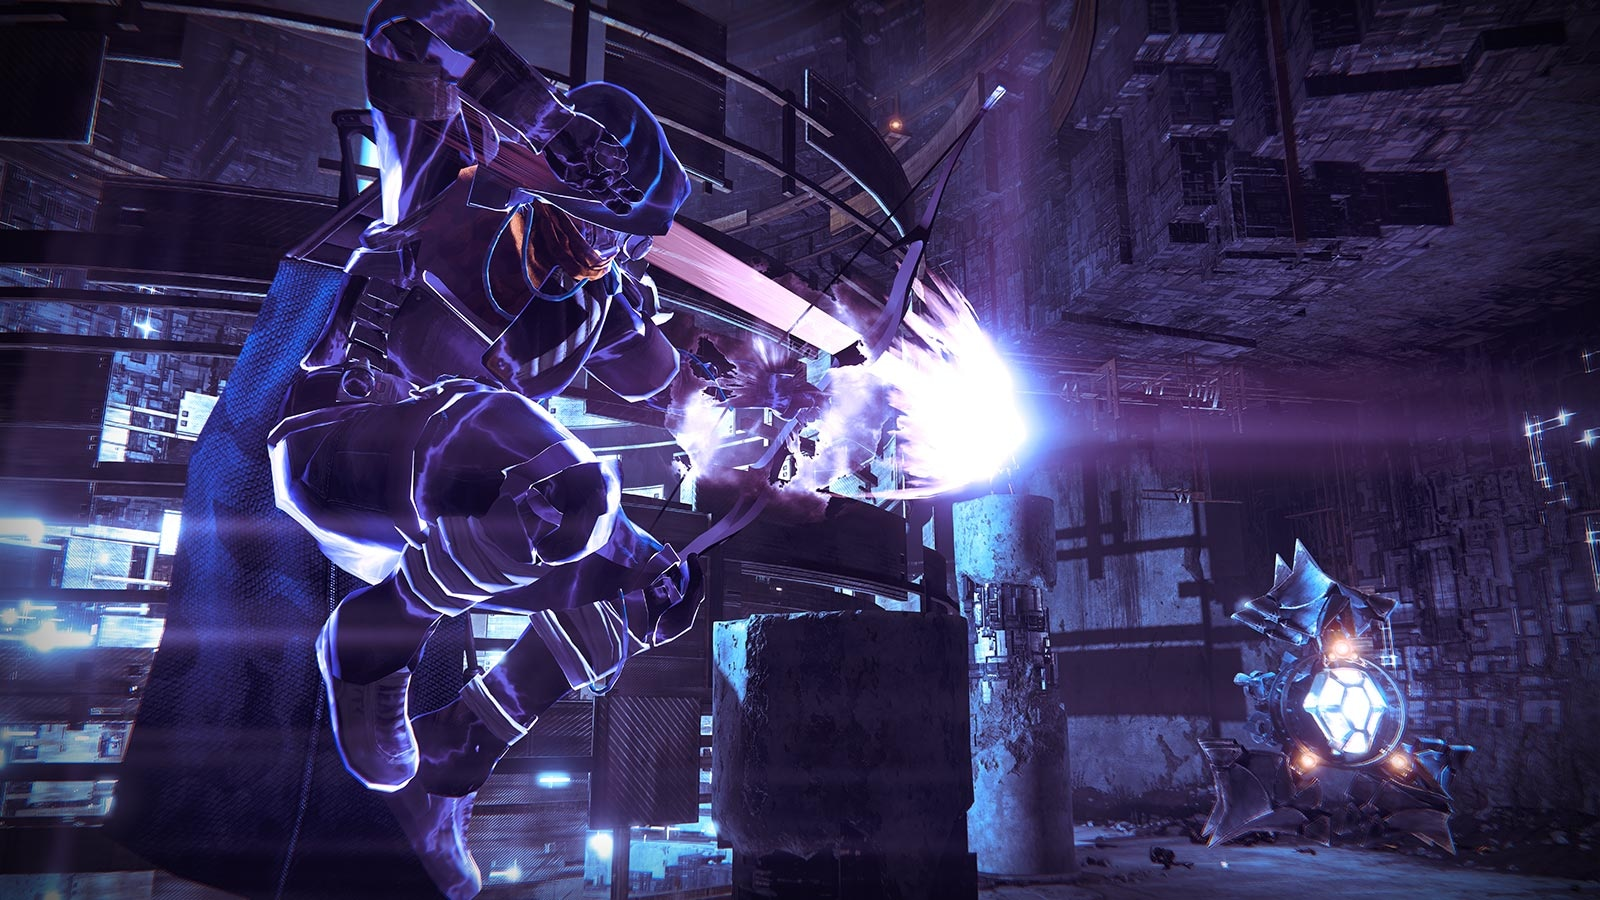 Destiny 2 Kings Fall Wallpaper Take A Look At Destiny The Taken King S Ps Exclusive